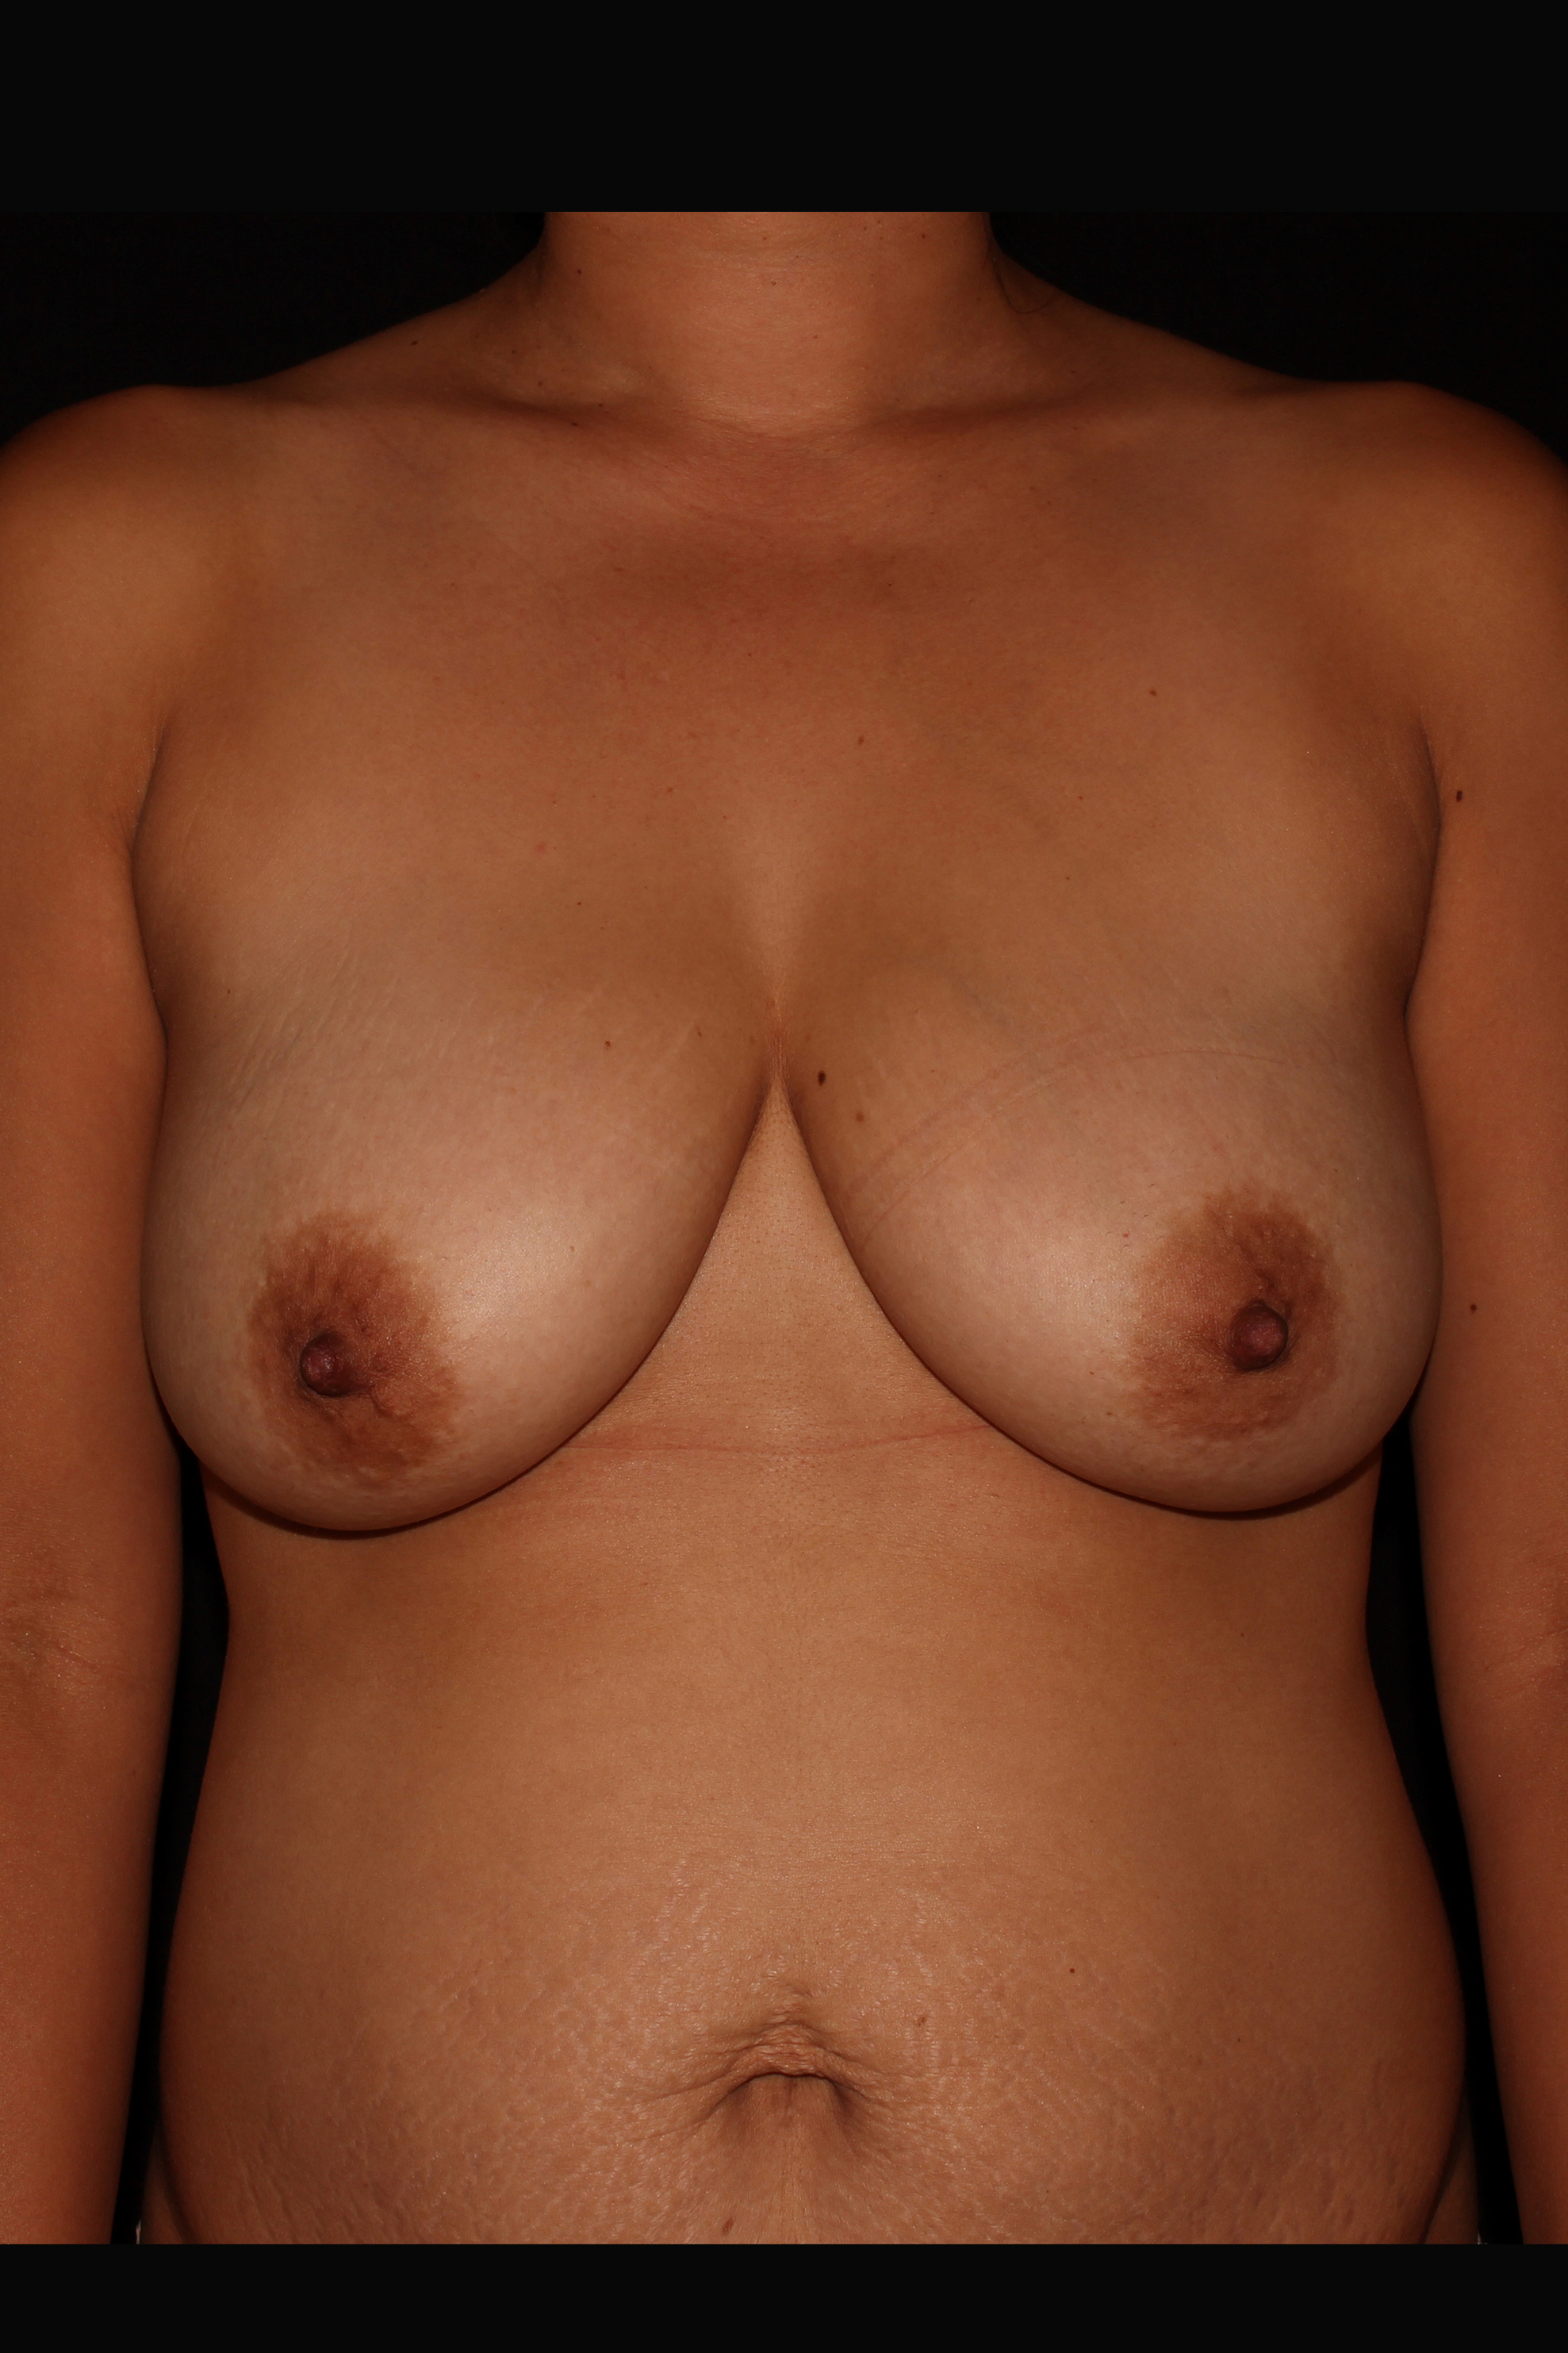 Before Breast Lift - Breast Lift without implants